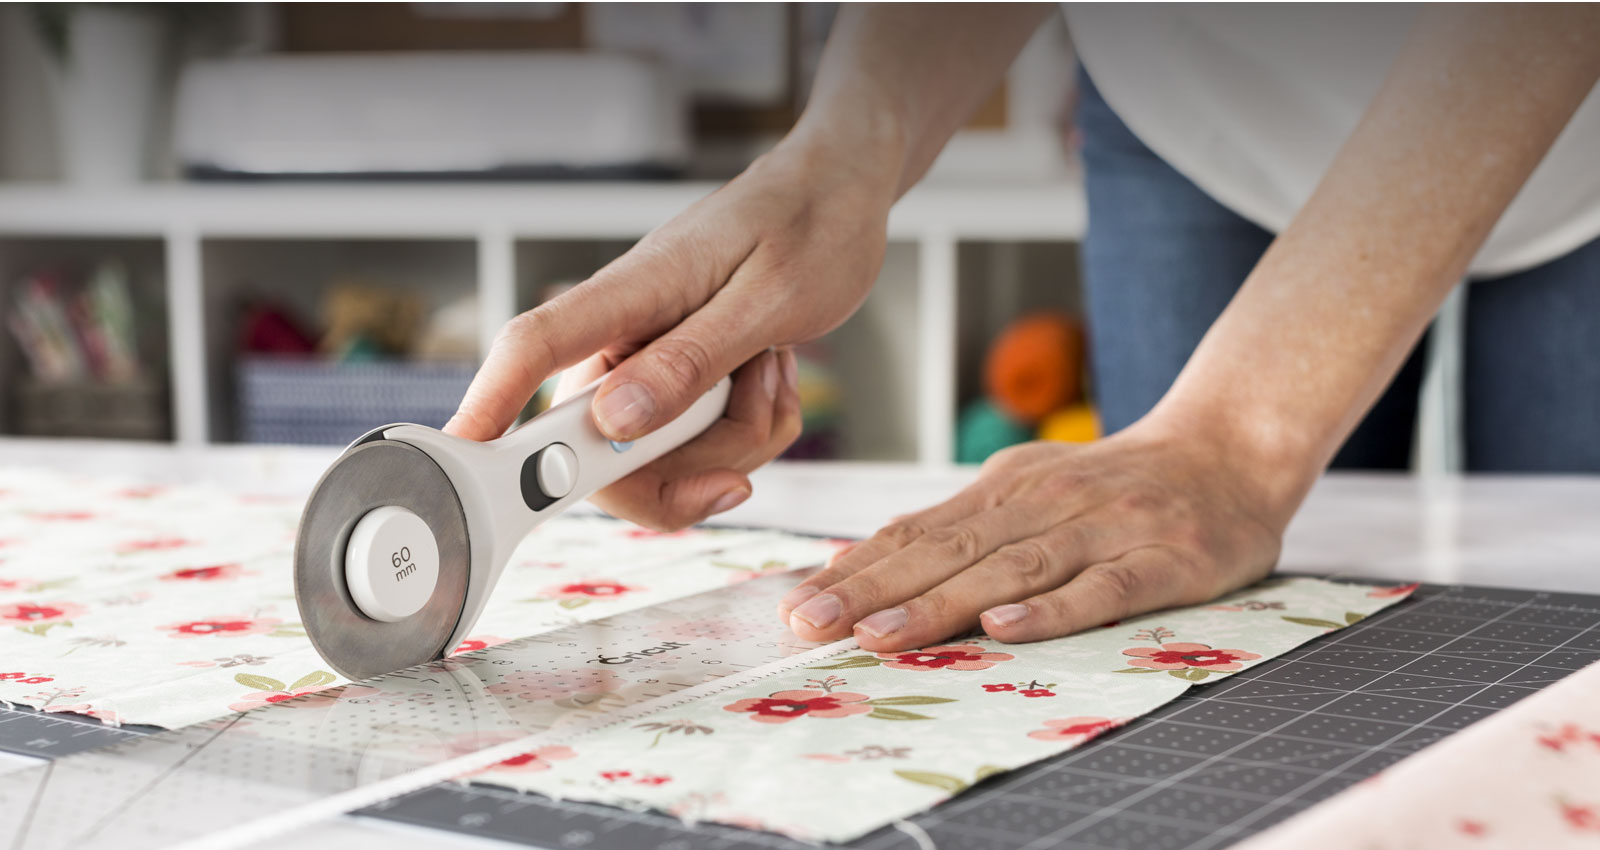 Fabric being cut with Rotary Cutter